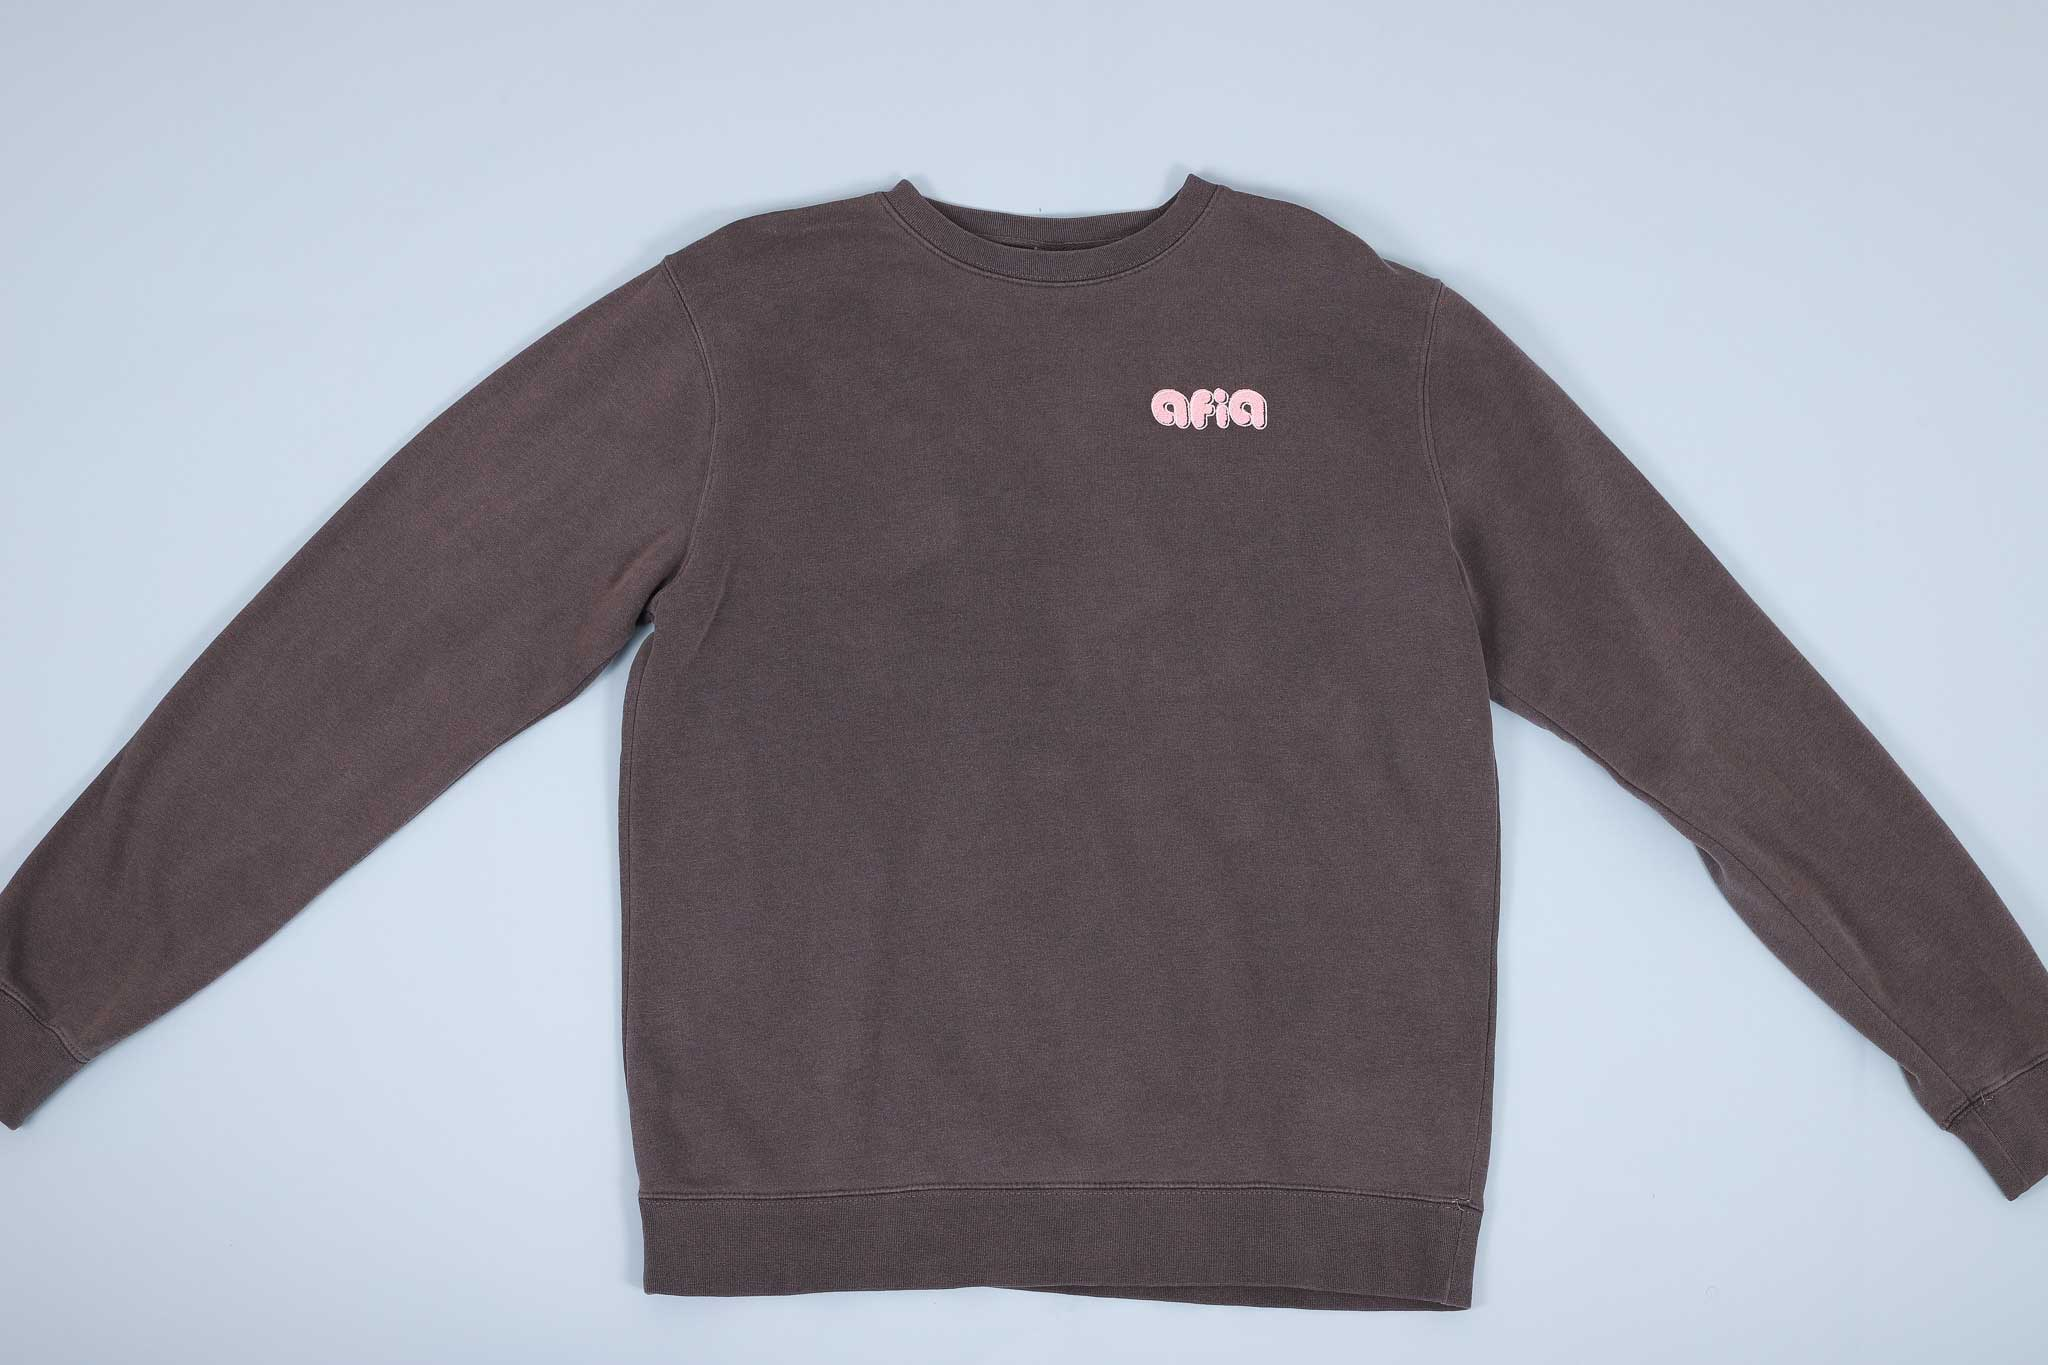 Grey sweater with pink text on the chest spread out on a light blue background